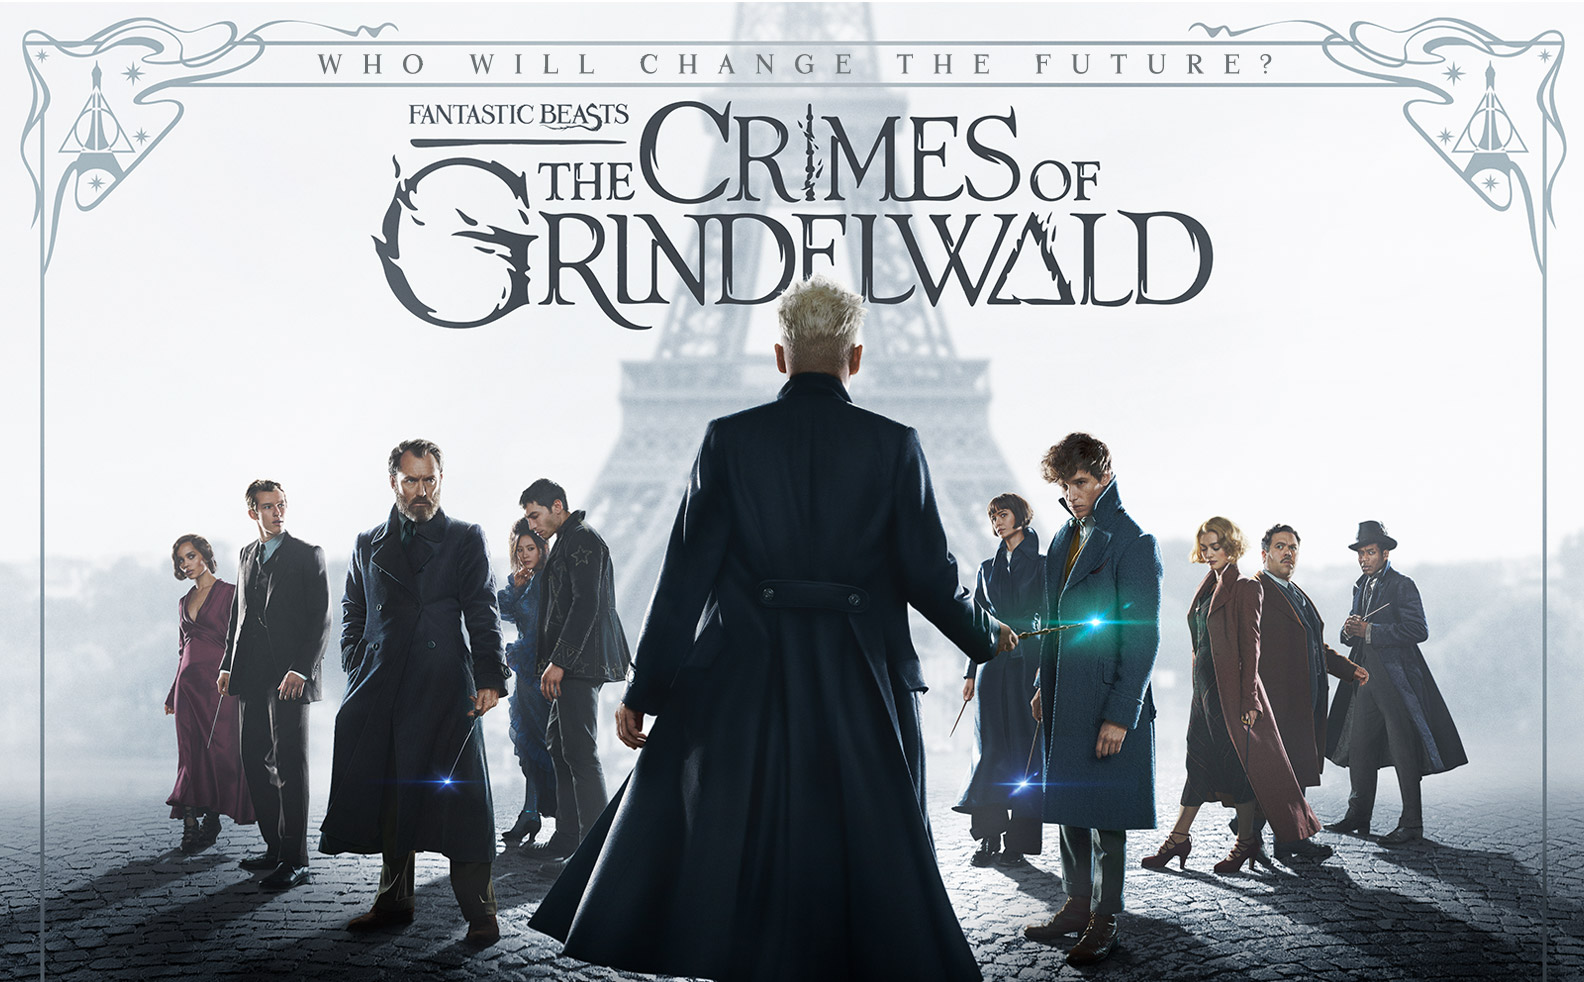 FANTASTIC BEASTS THE CRIMES OF GRINDELWALD Official Movie Site 1584x982